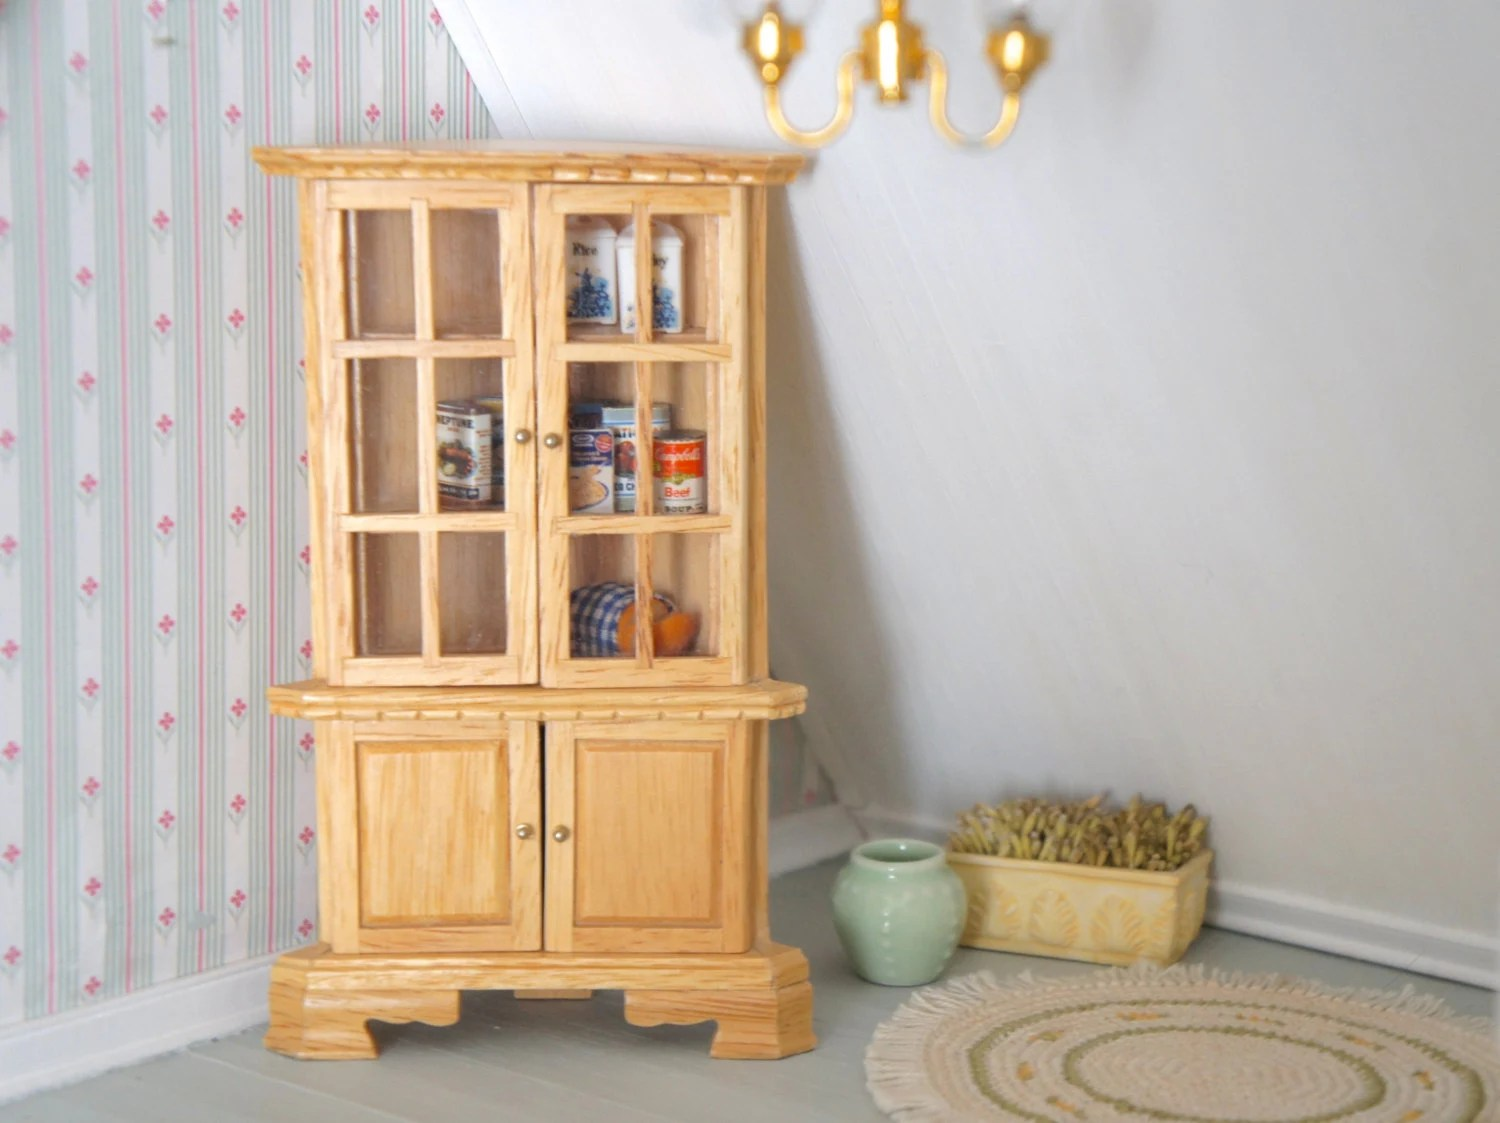 Dolhouse Pantry Cabinet Dollhouse Kitchen Furniture